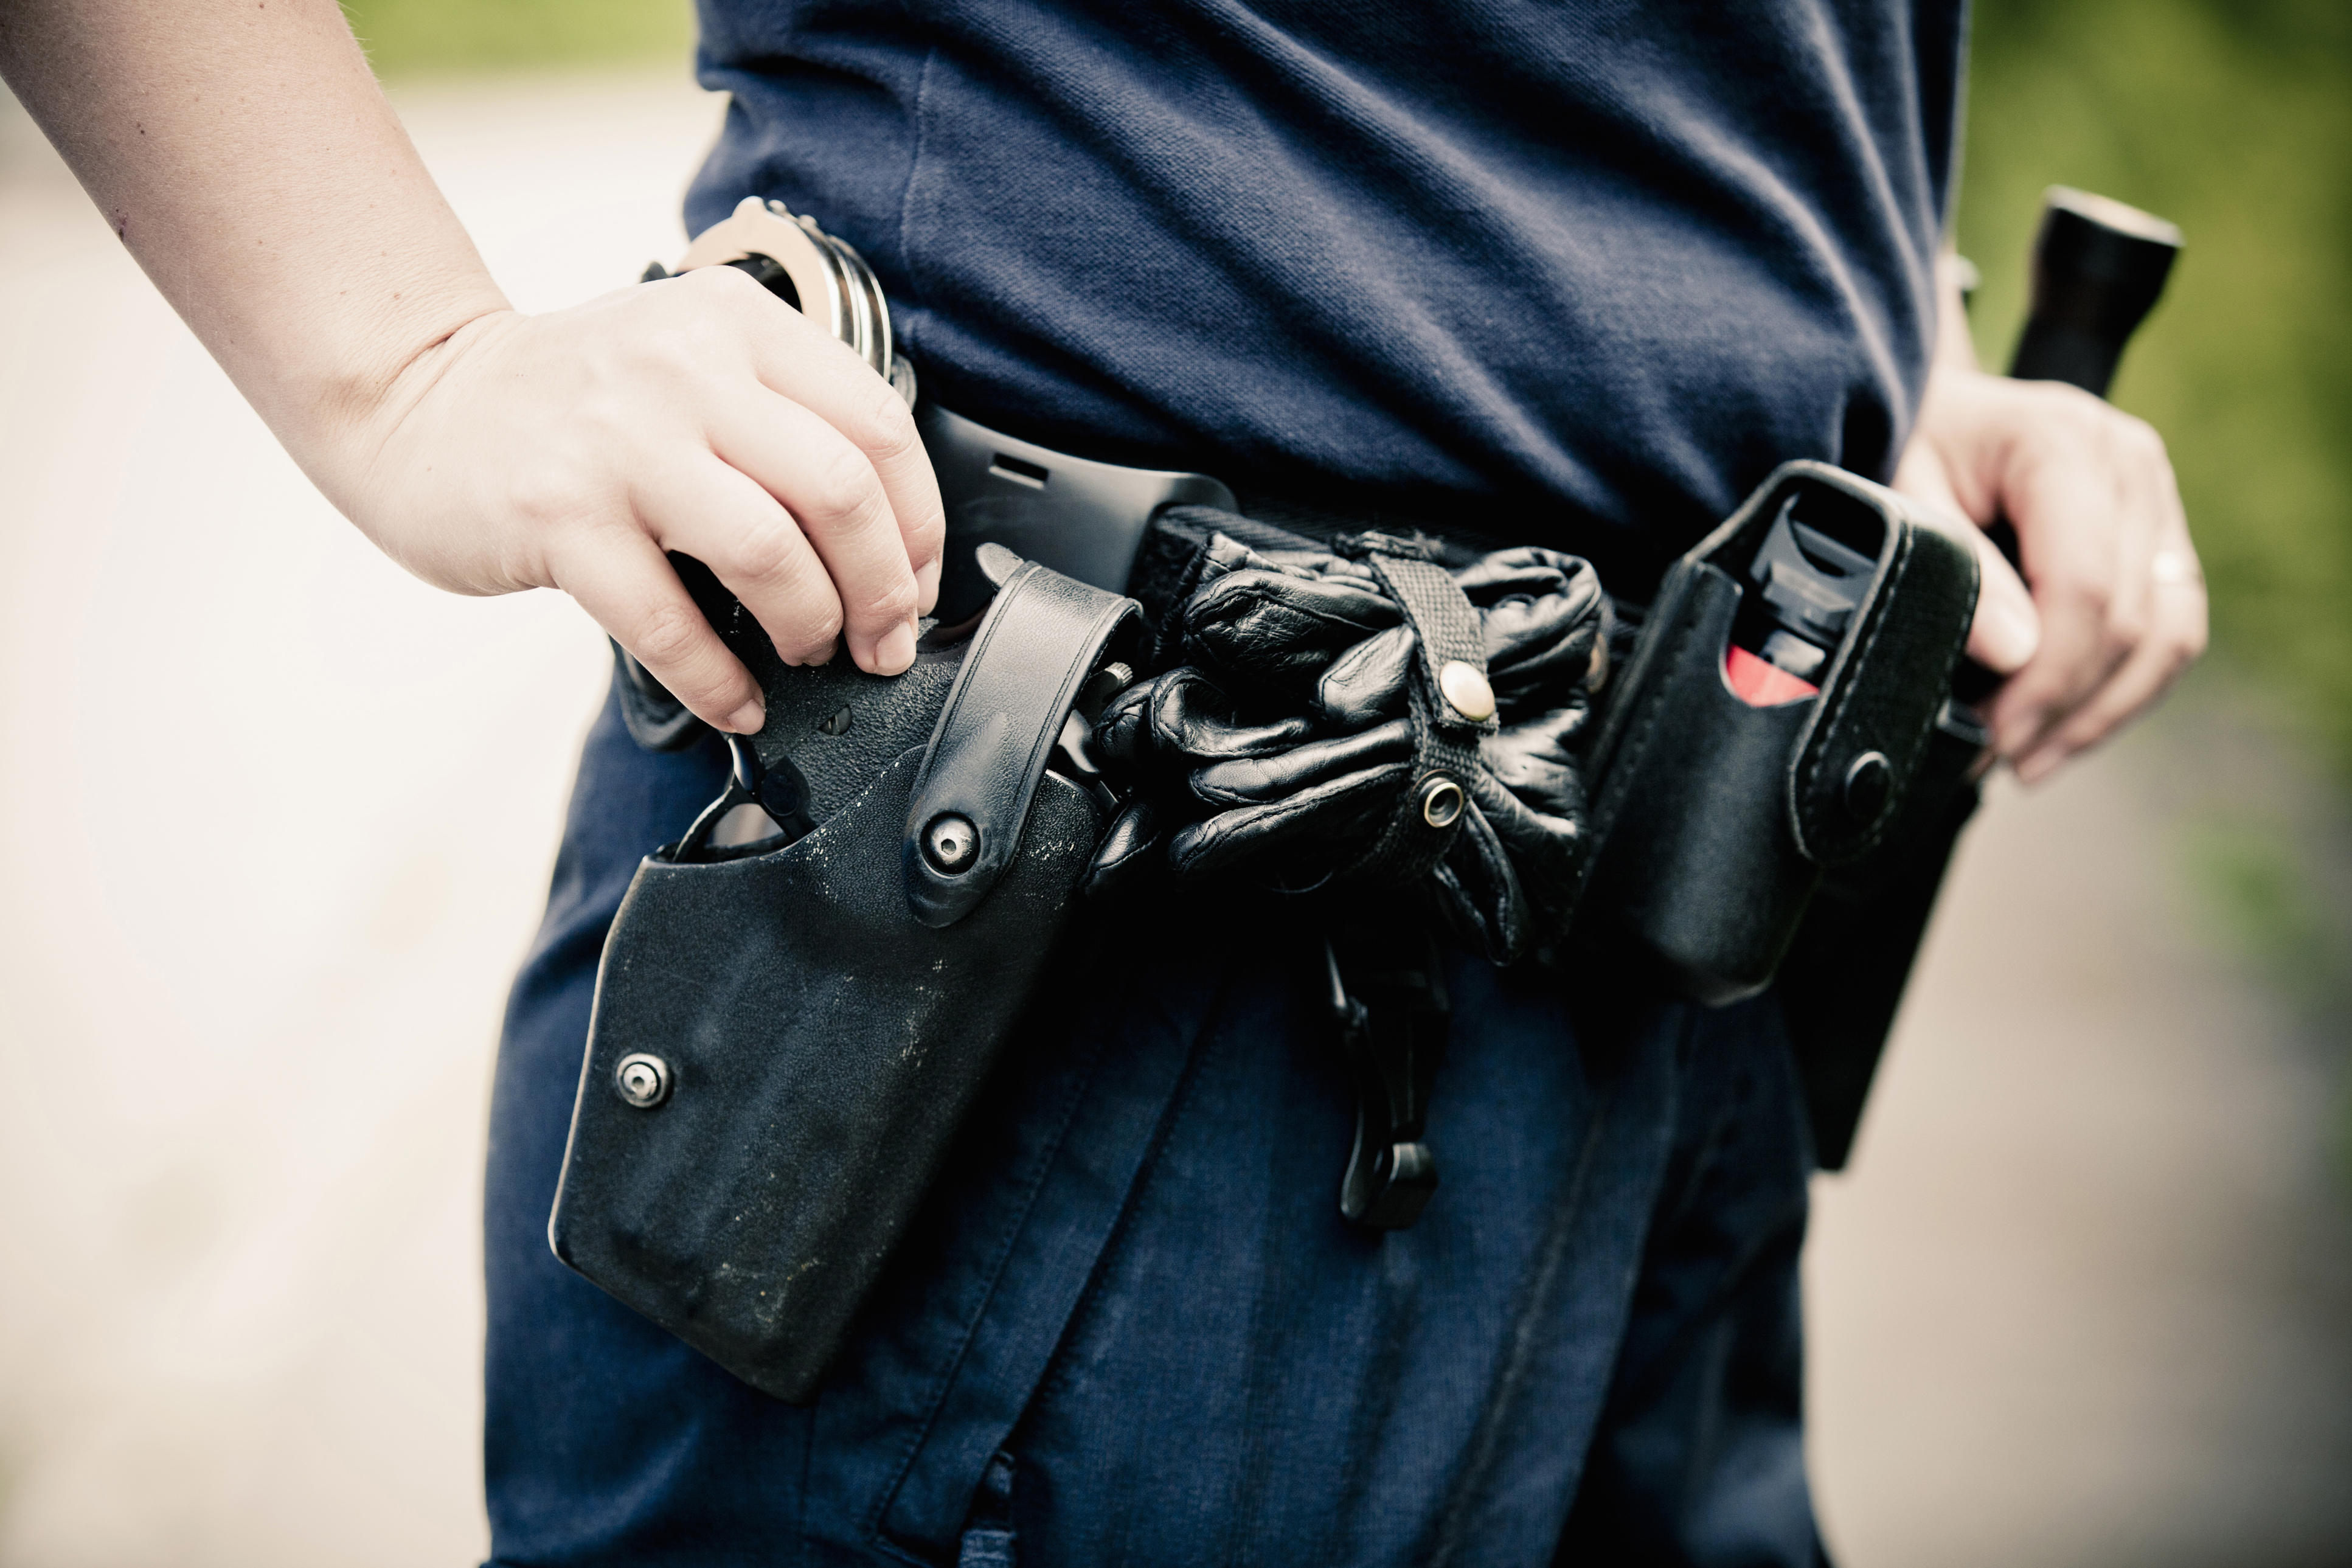 Why Police Need Training To Interact >> After Texas Pool Beating Advocates Push For School Police Training